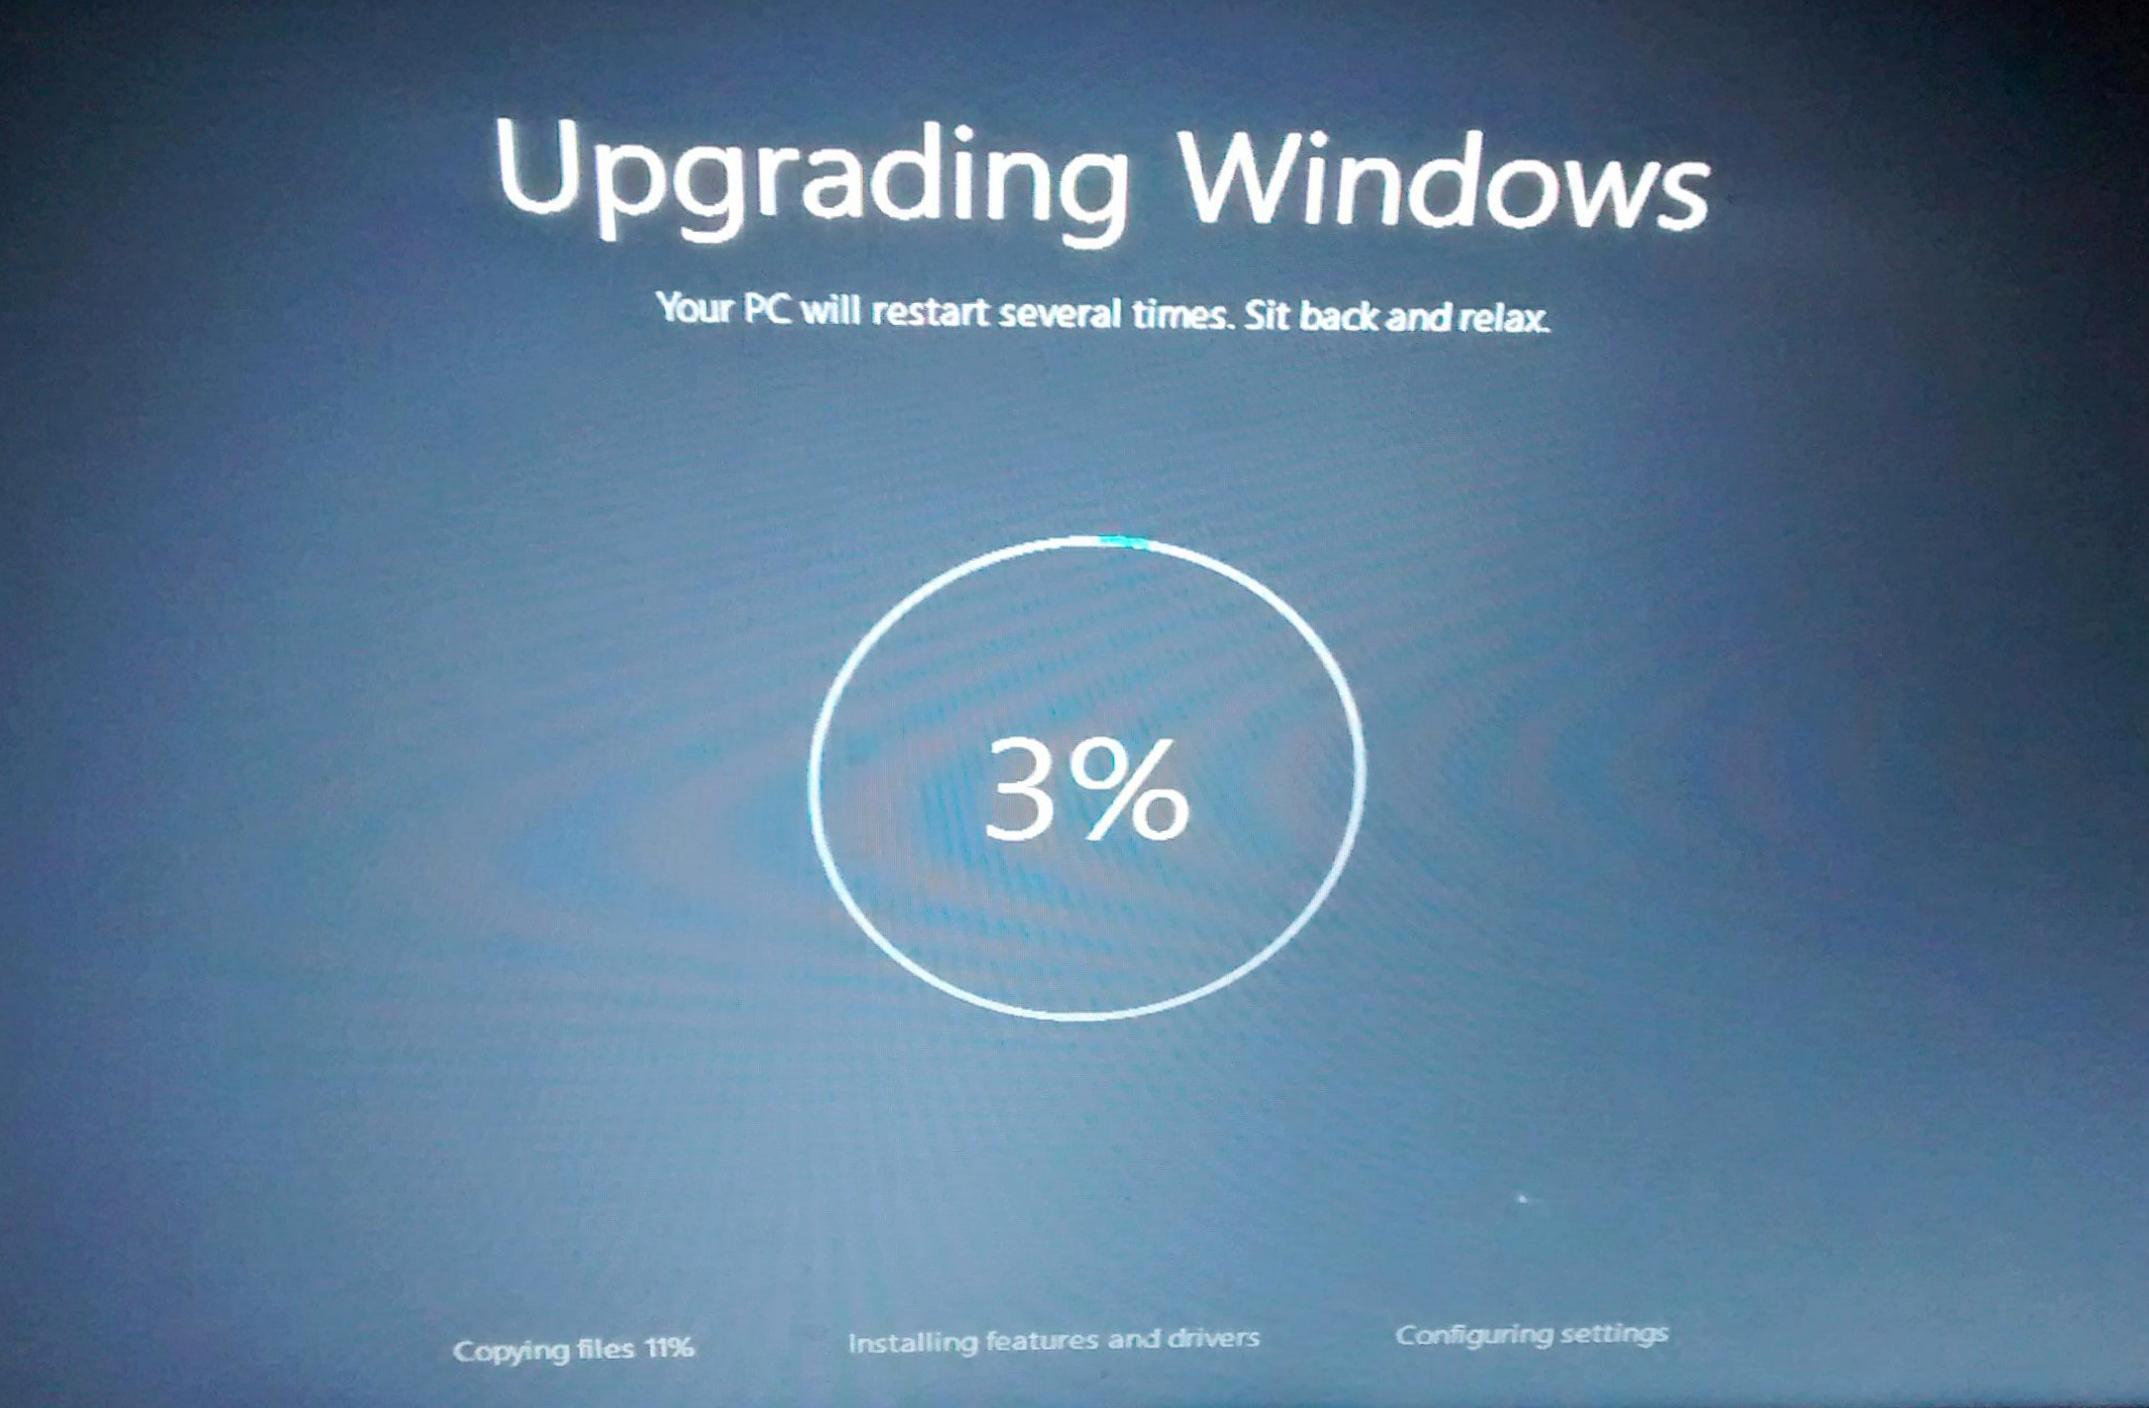 First major update for Windows 10 Now Available!